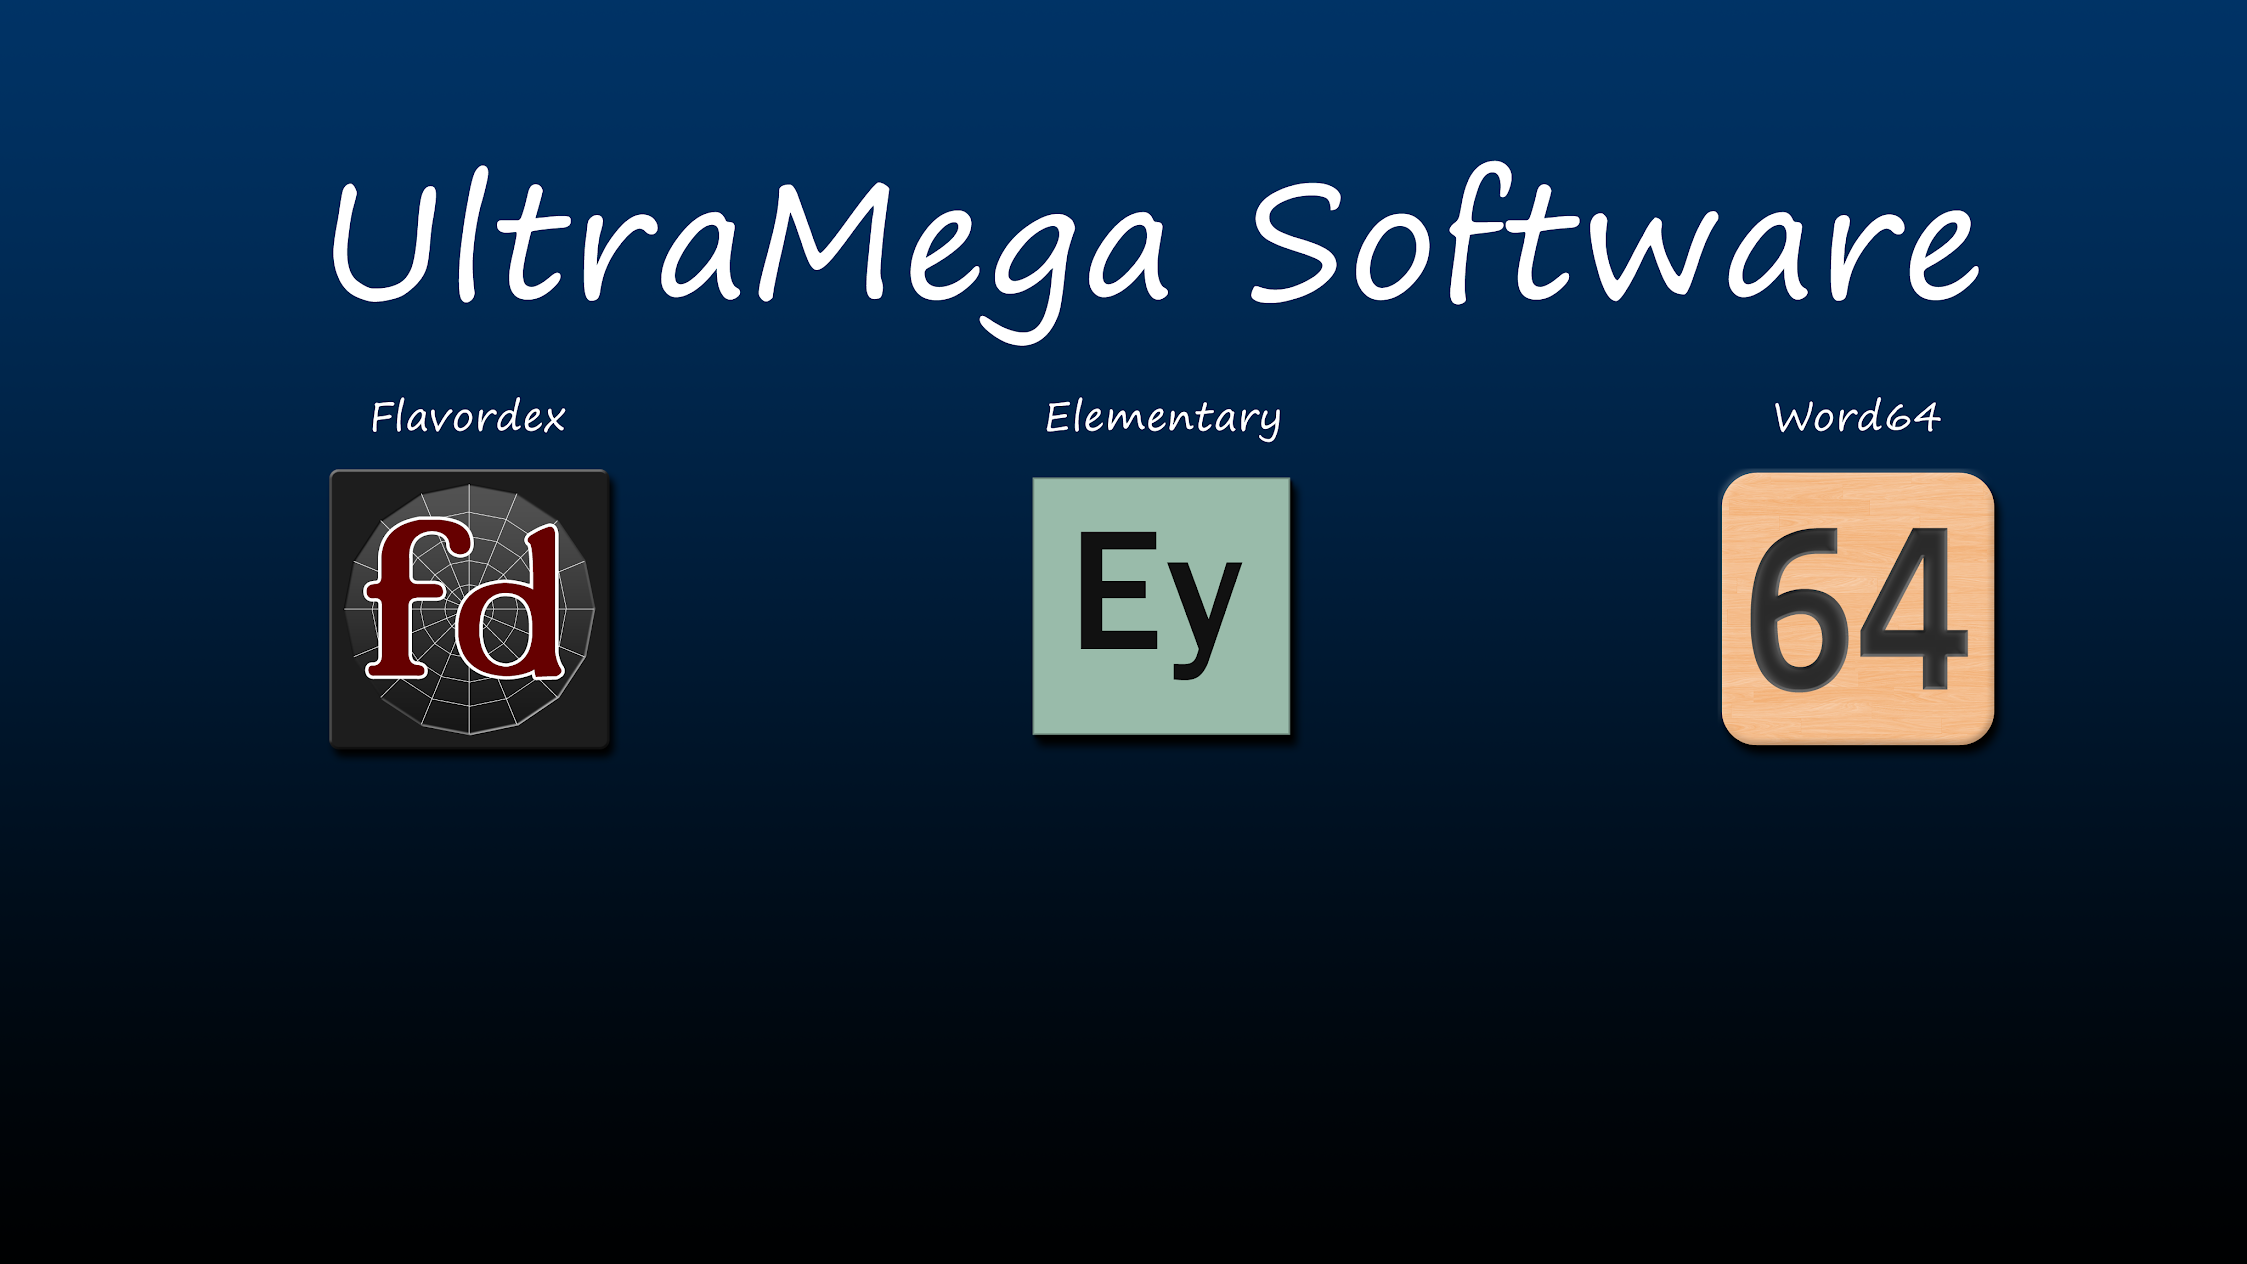 UltraMega Software